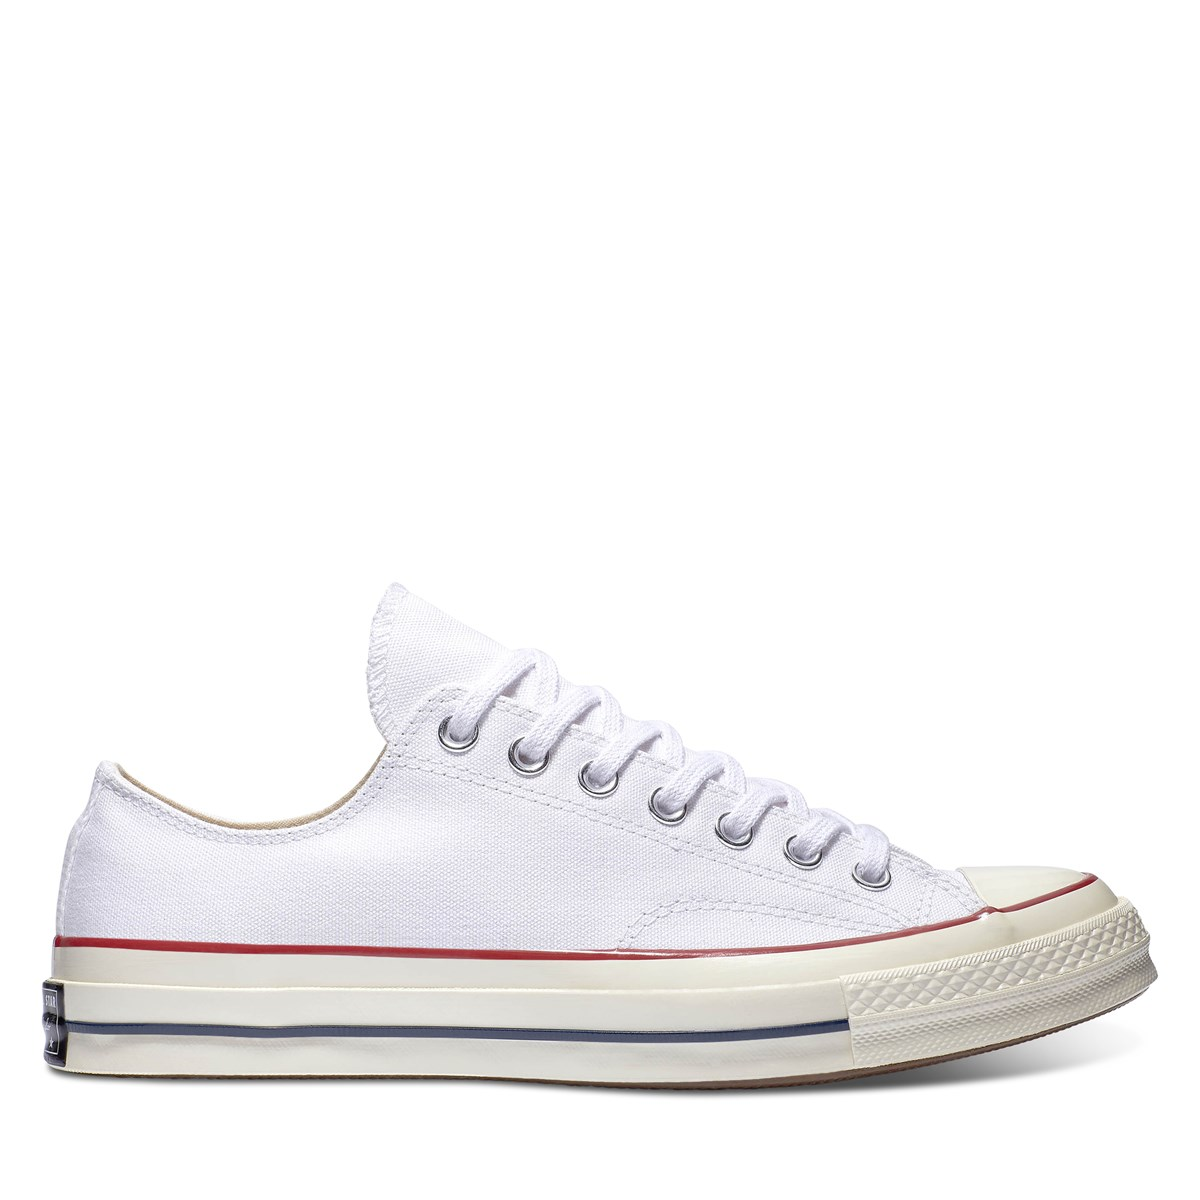 Chuck 70 Ox Sneakers in White